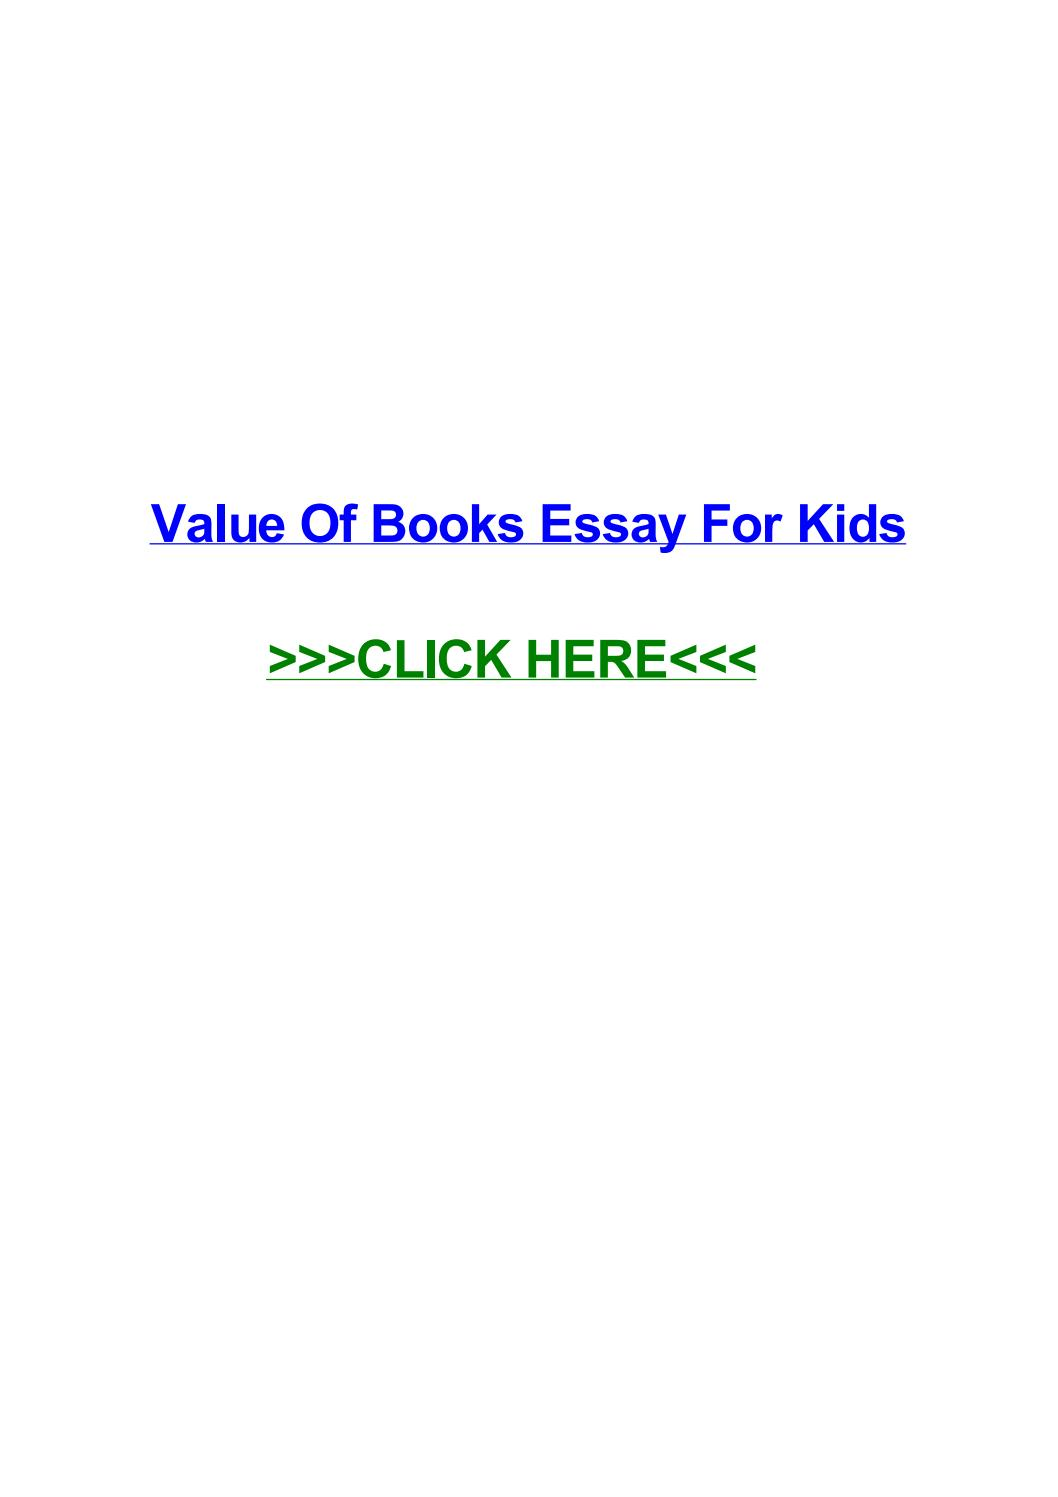 005 Page 1 Value Of Books Essay For Kids Unique Full